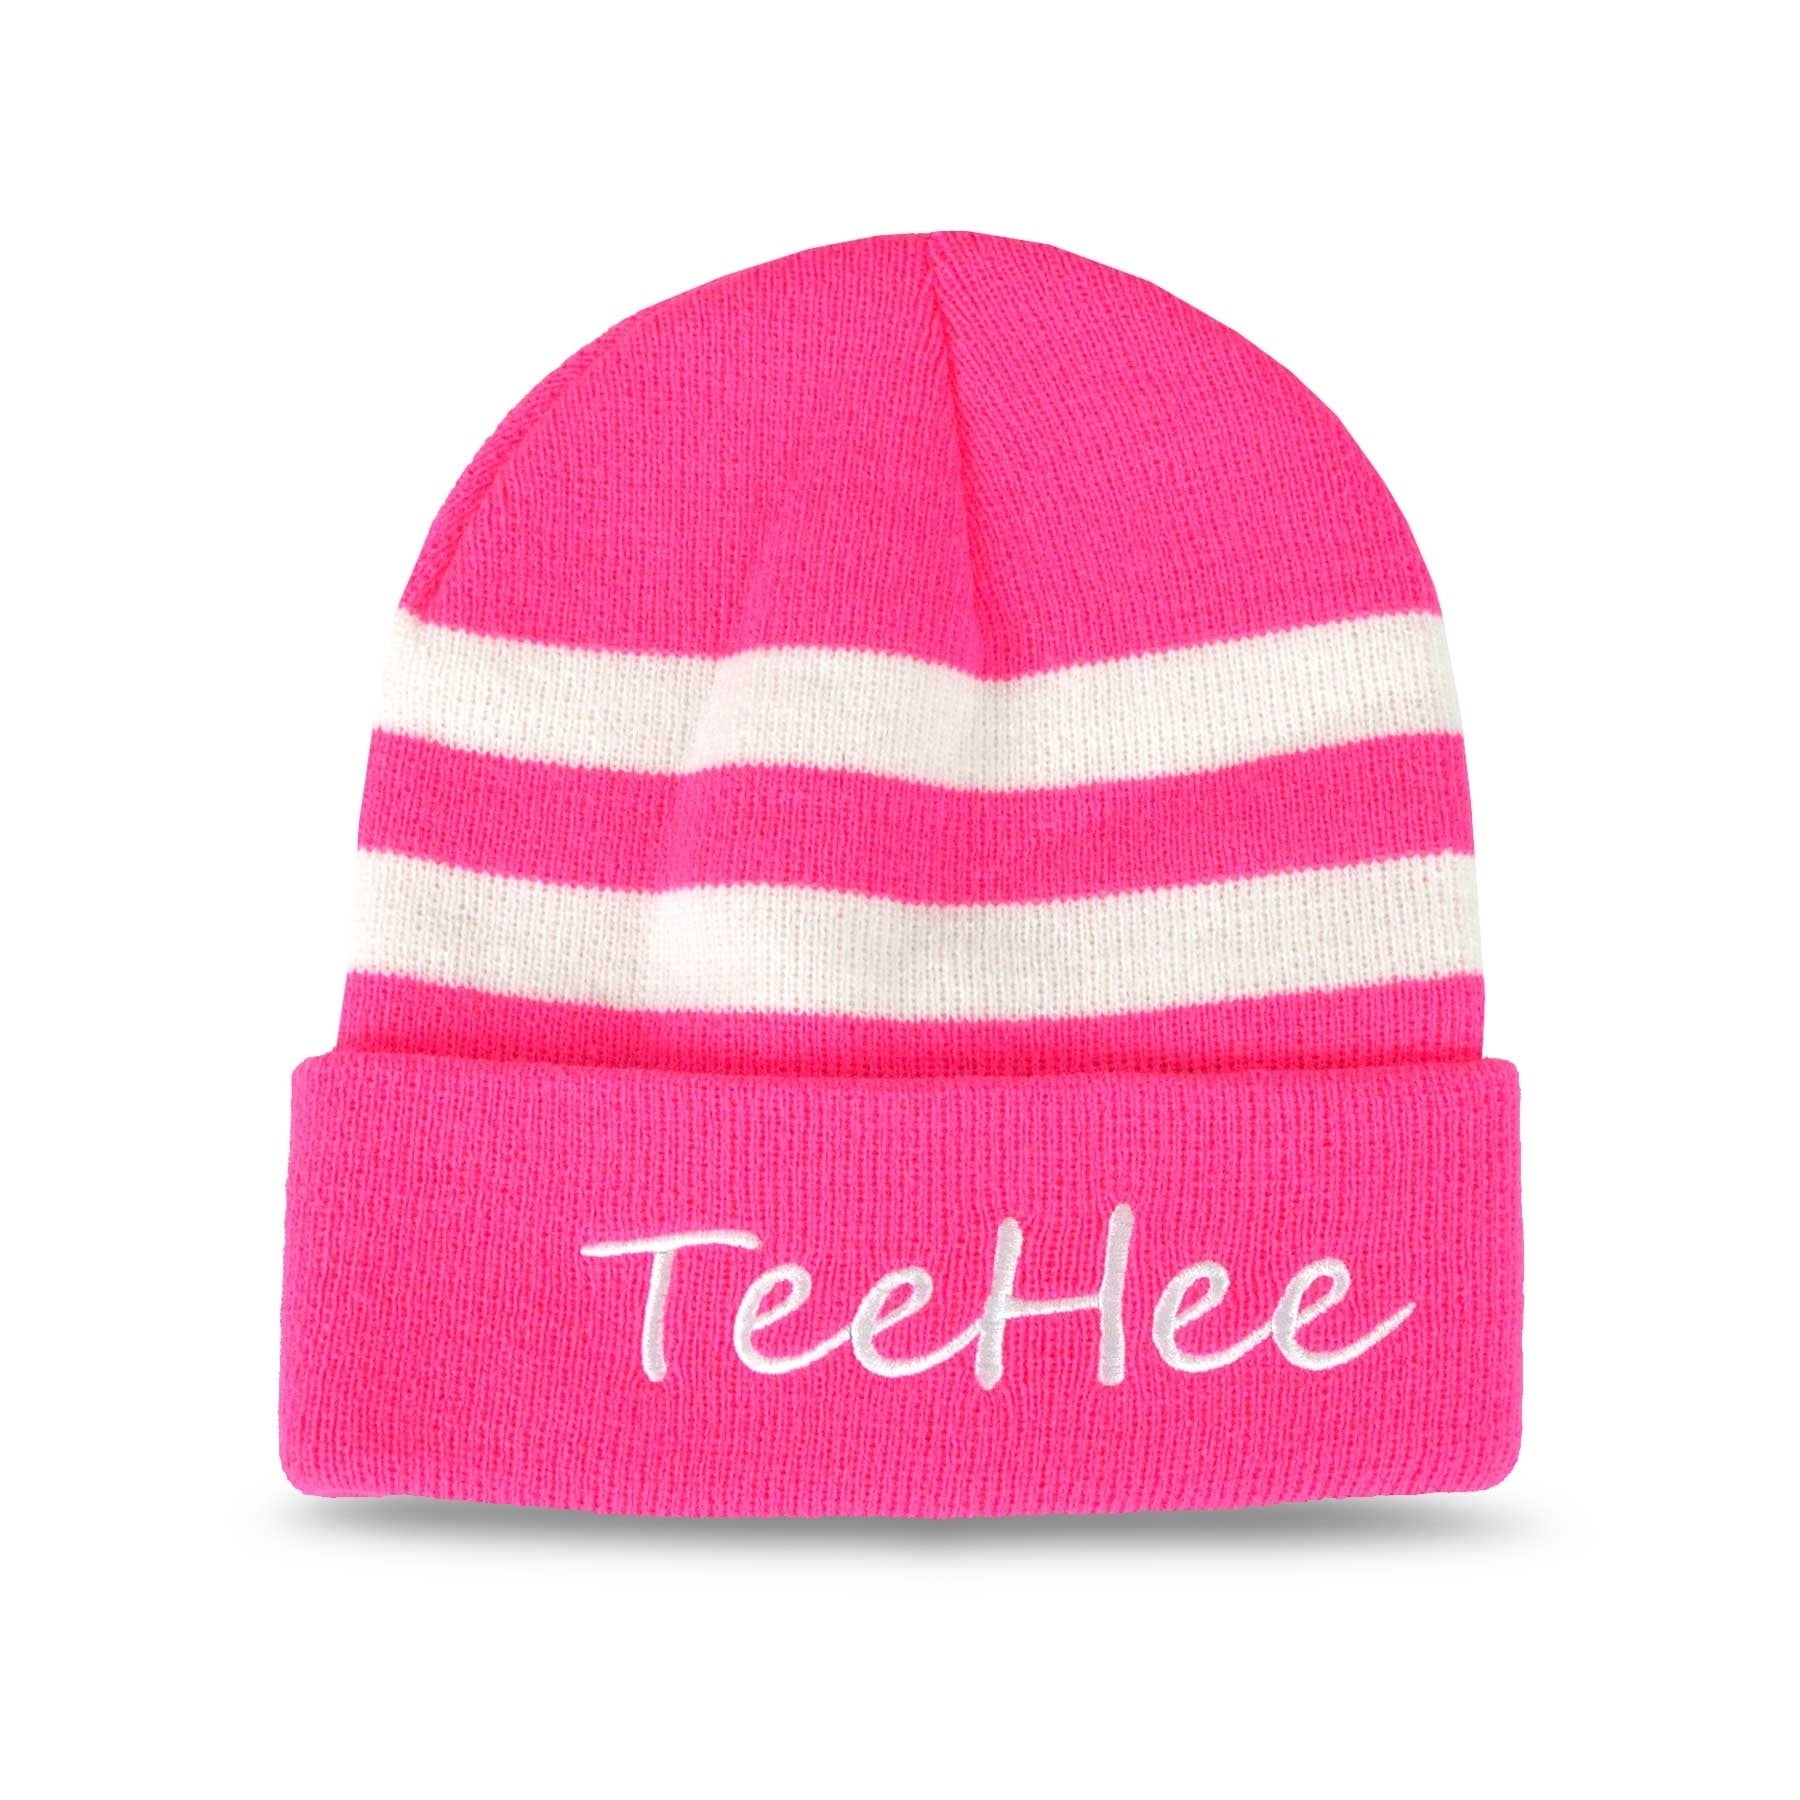 cb987f75a1467 Shop TeeHee Fun and Fashionable Cuffed Fold Beanie Hat 3-Pack - Free  Shipping On Orders Over  45 - Overstock.com - 20455004